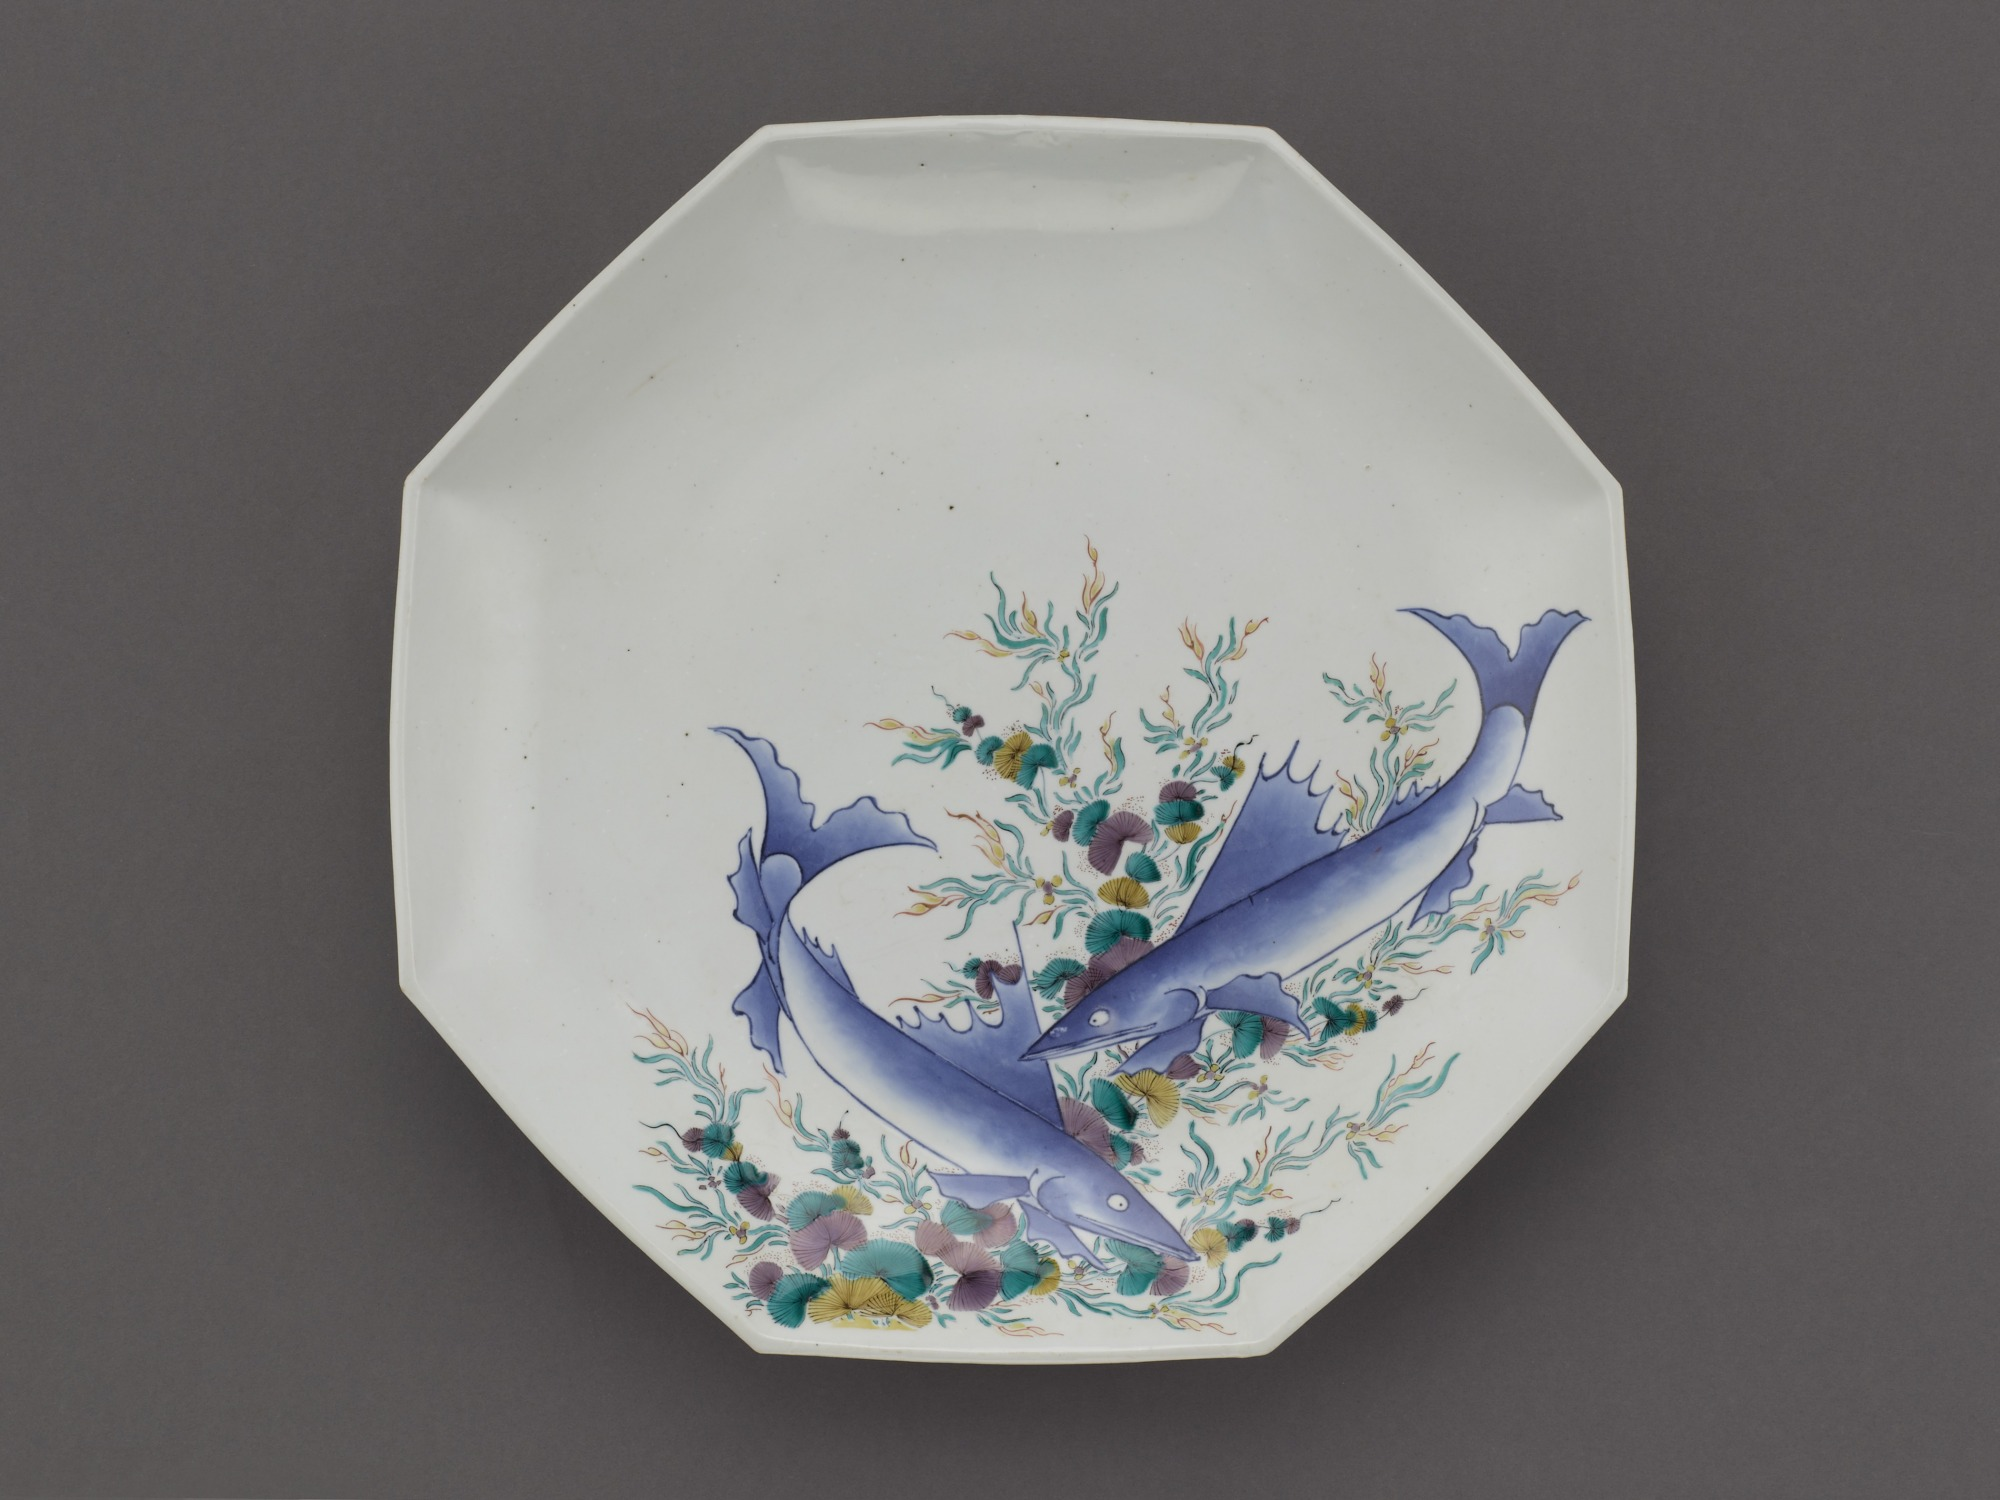 Octagonal dish with design of fish